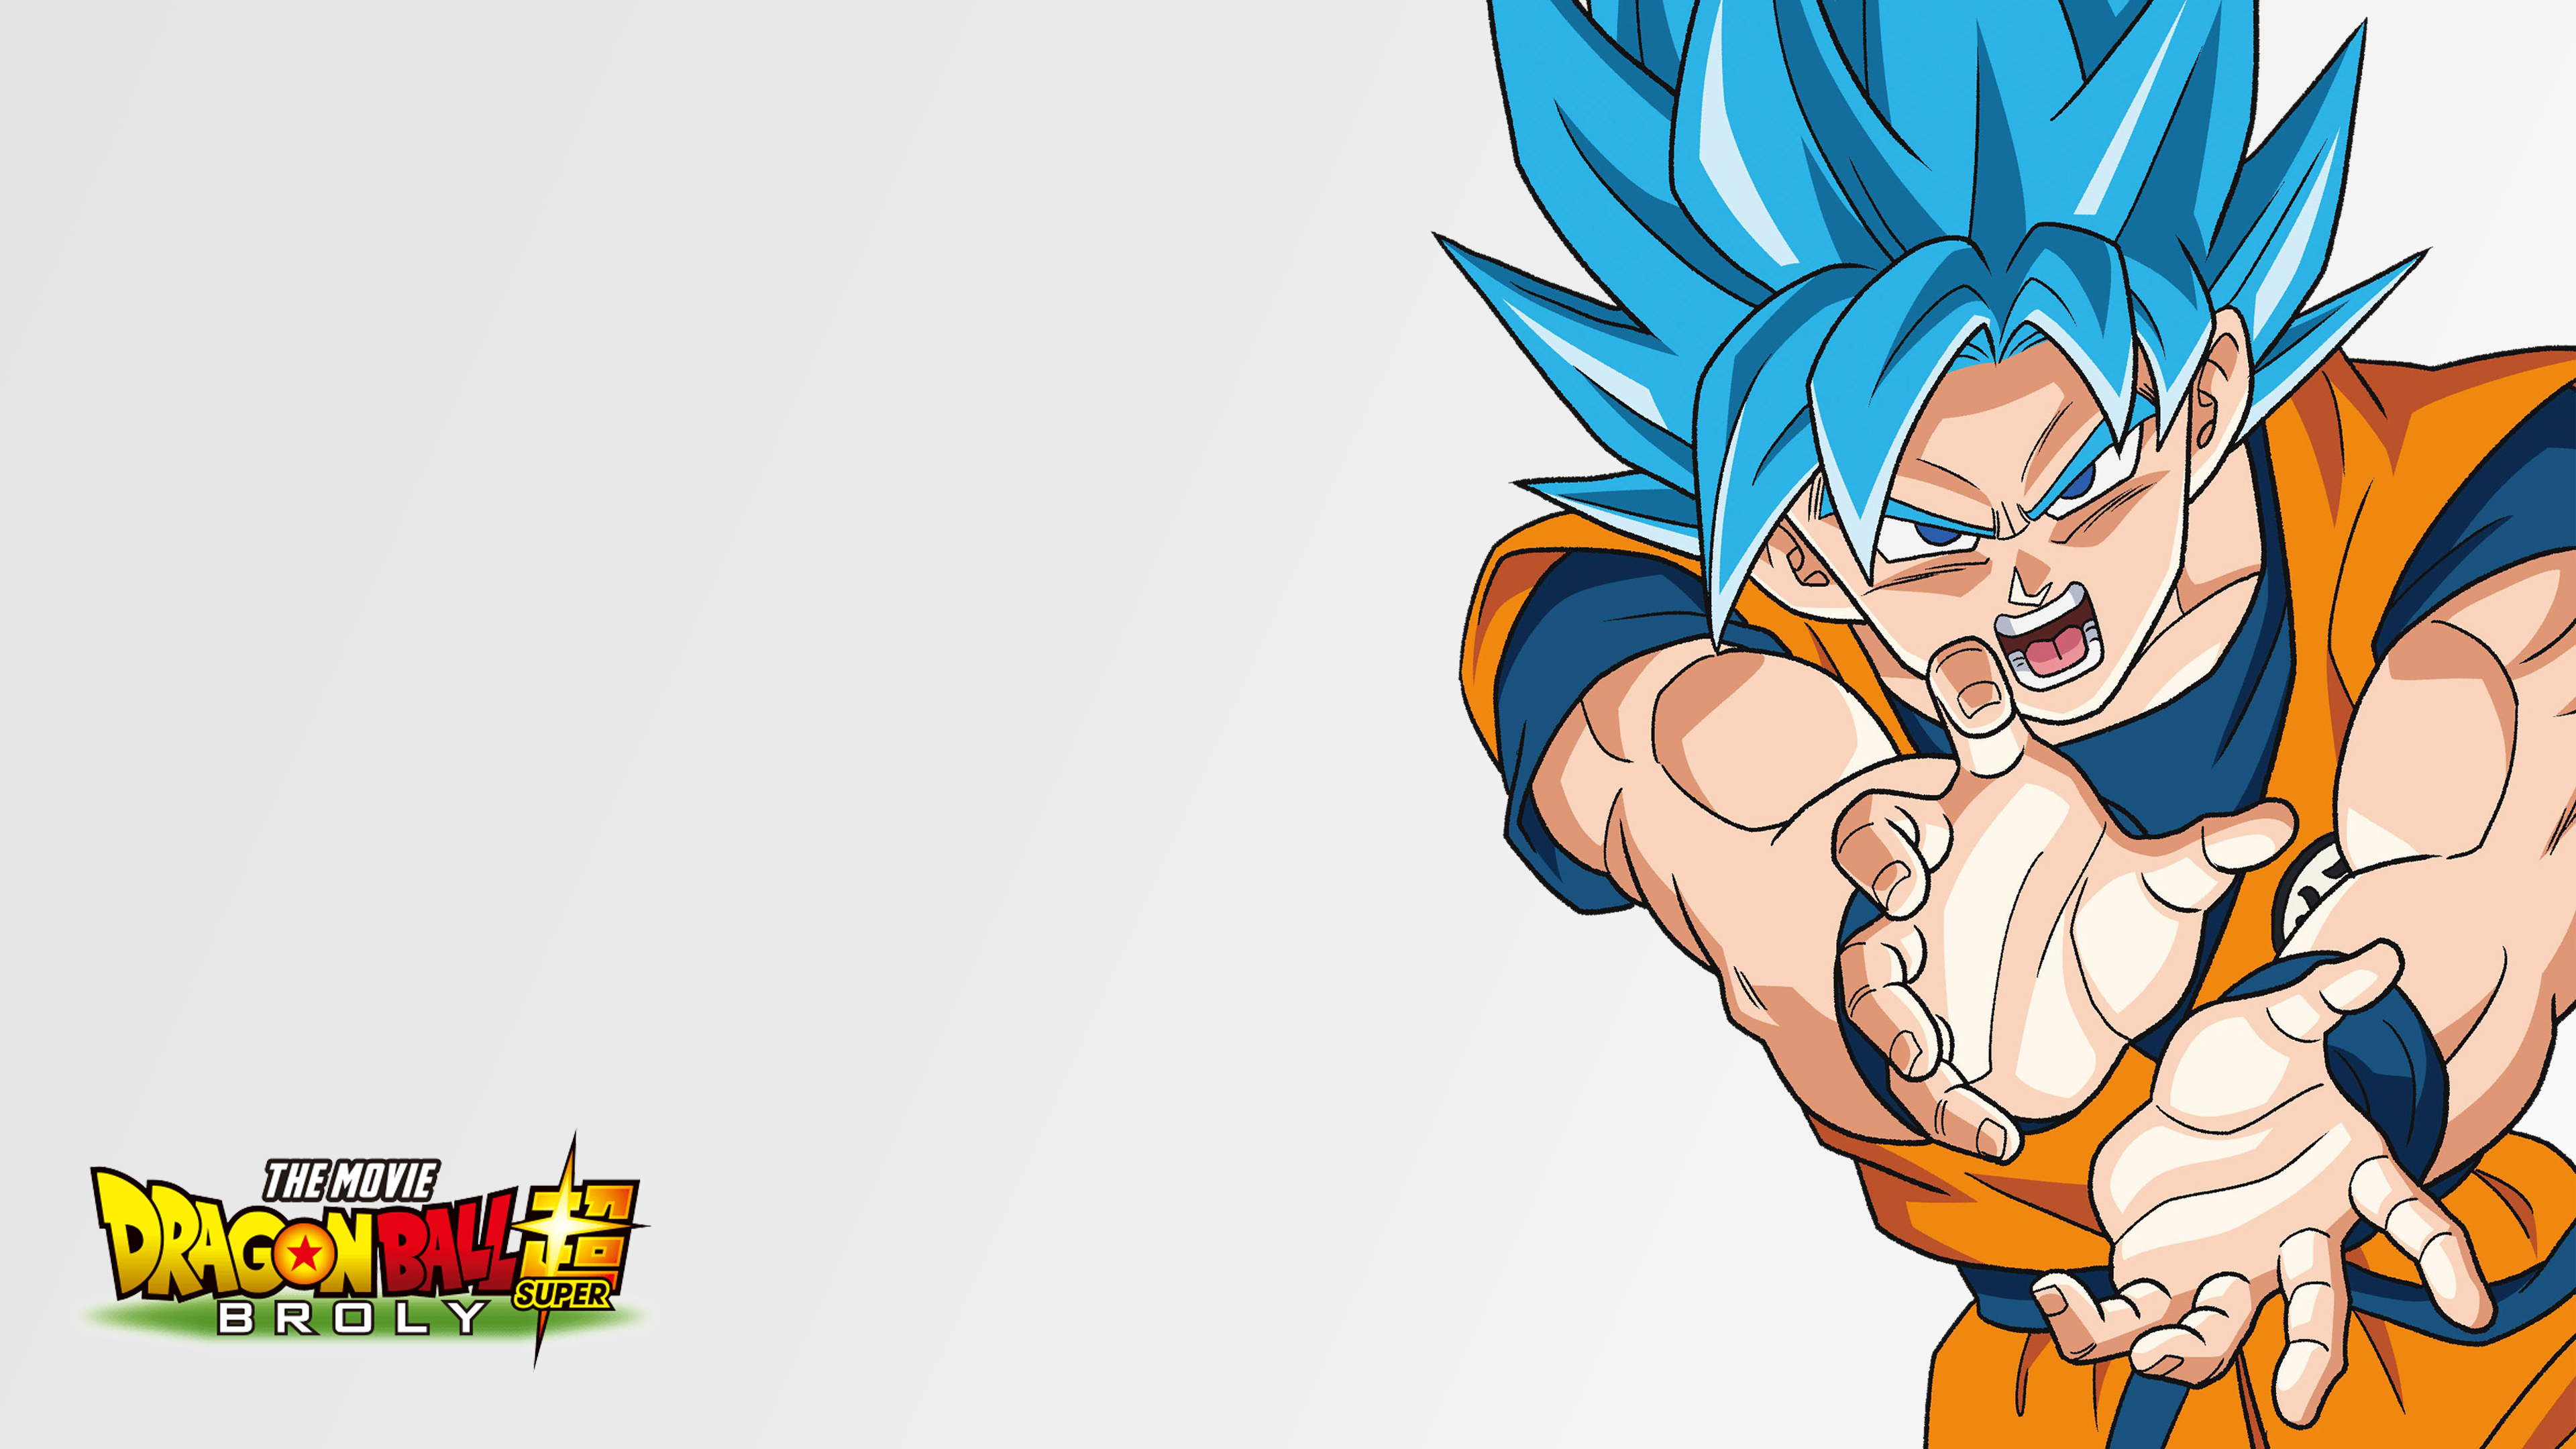 Dragon Ball Super Broly Goku Wallpapers Cat With Monocle